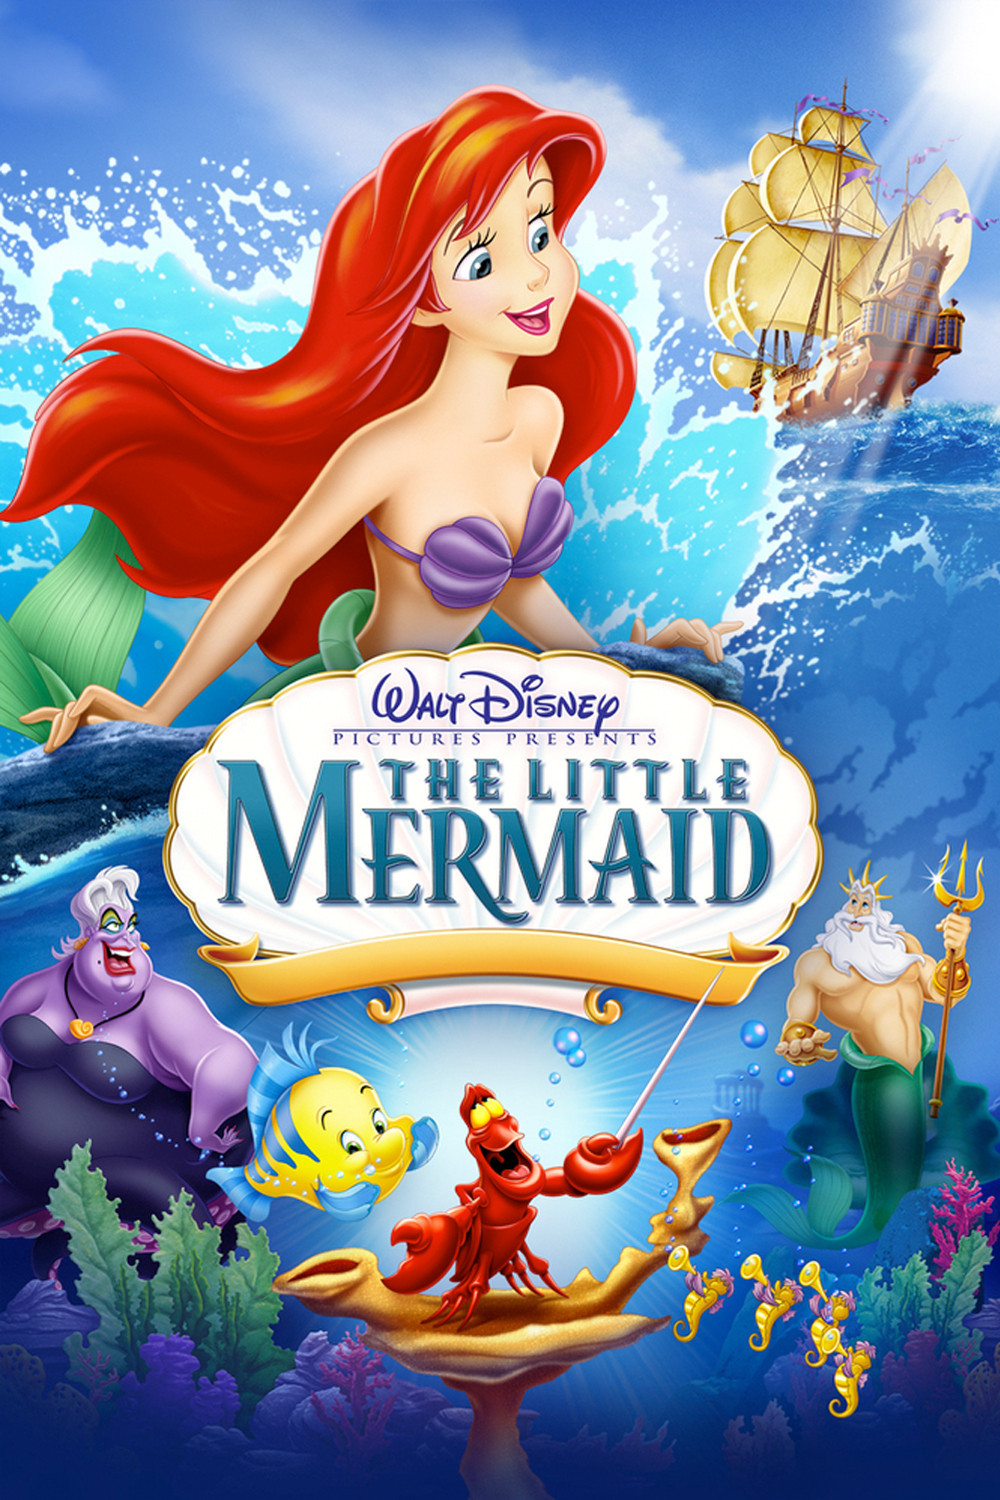 the gallery for gt the little mermaid 2 movie cover